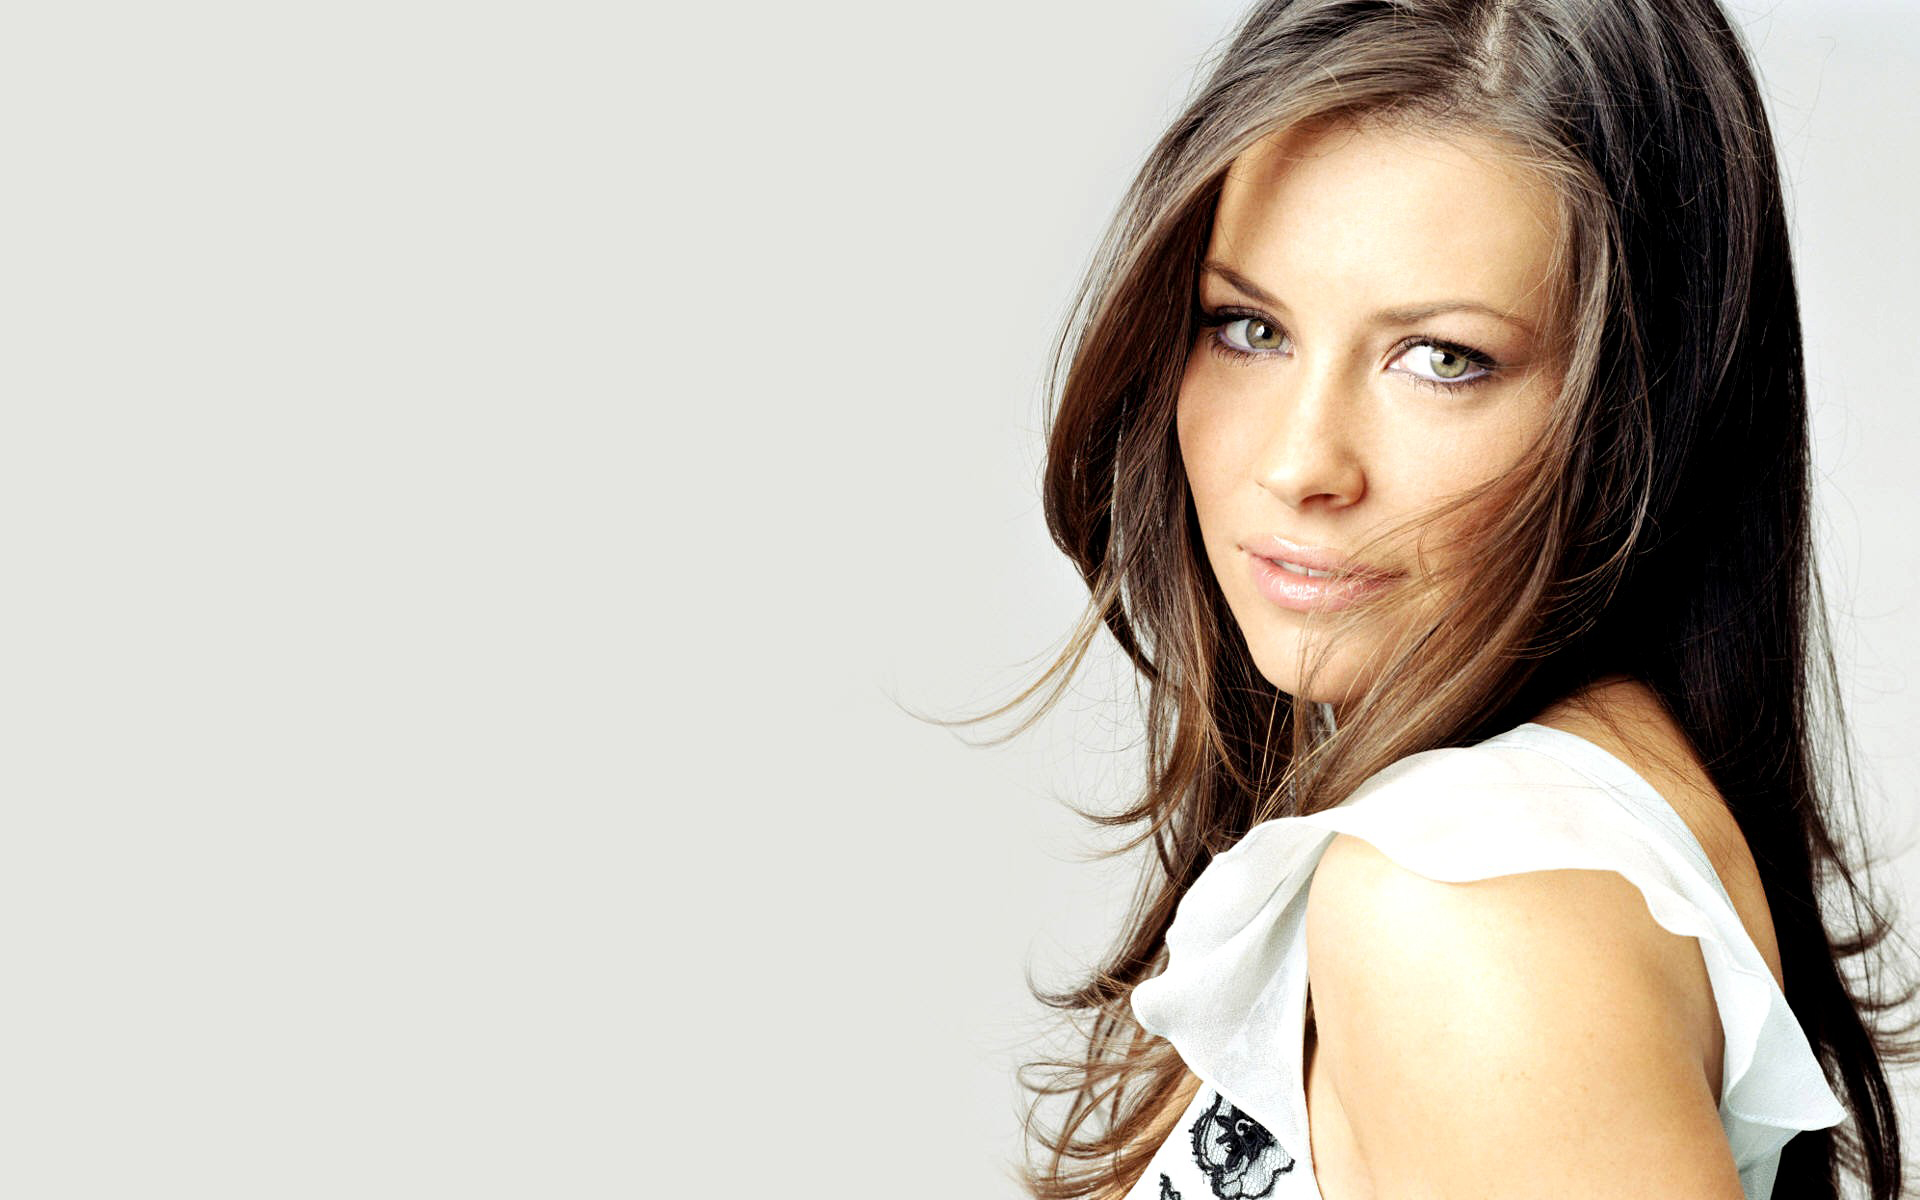 beautiful evangeline lilly wallpaper 45714